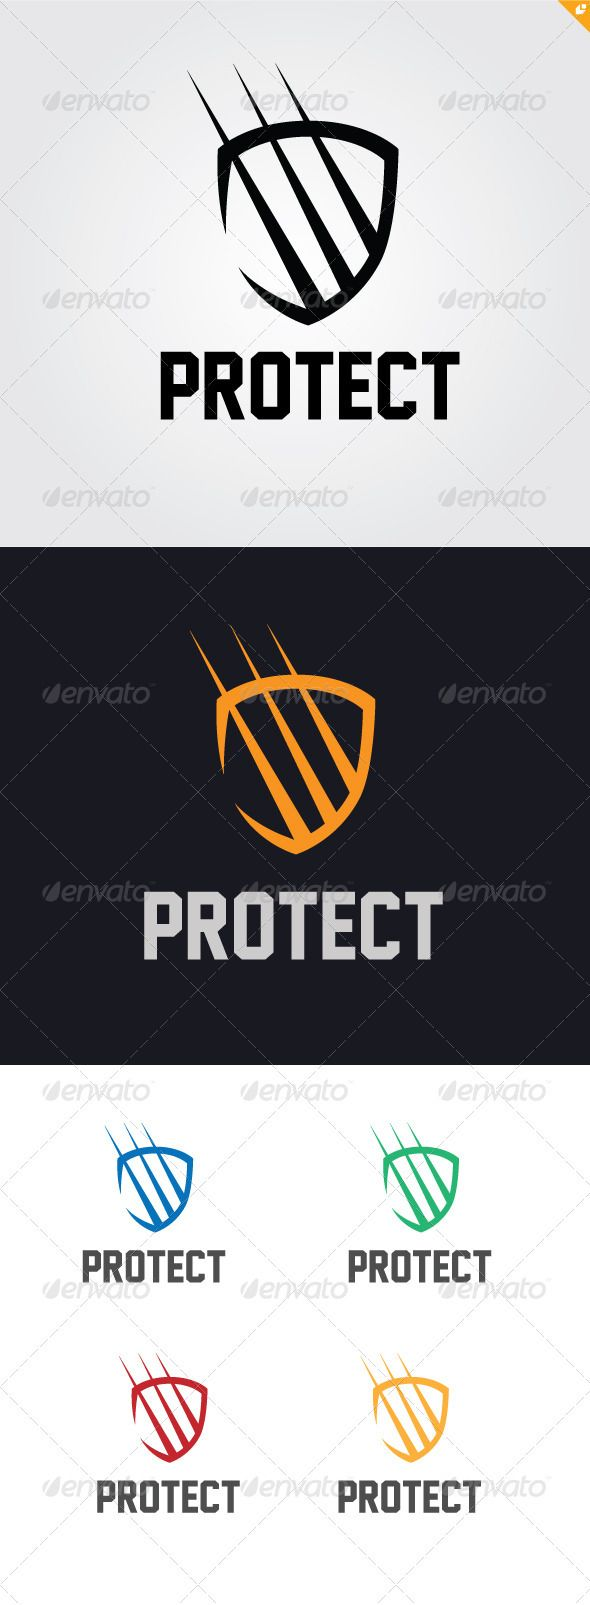 Protect Logo  #GraphicRiver        Protect – Logo Template  	 This logo design for security program,creative business and unique design.  Logo Template Features   AI and EPS (Illustrator 10 EPS ) 300PPI  CMYK   100% Scalable Vector Files  Easy to edit color / text  Ready to print  Free font used 	 Jersey M54   My Logo Templates Designs     	 If you buy and like this logo, please remember to rate it. Thanks!     Created: 6November12 GraphicsFilesIncluded: VectorEPS #AIIllustrator Layered: No ...